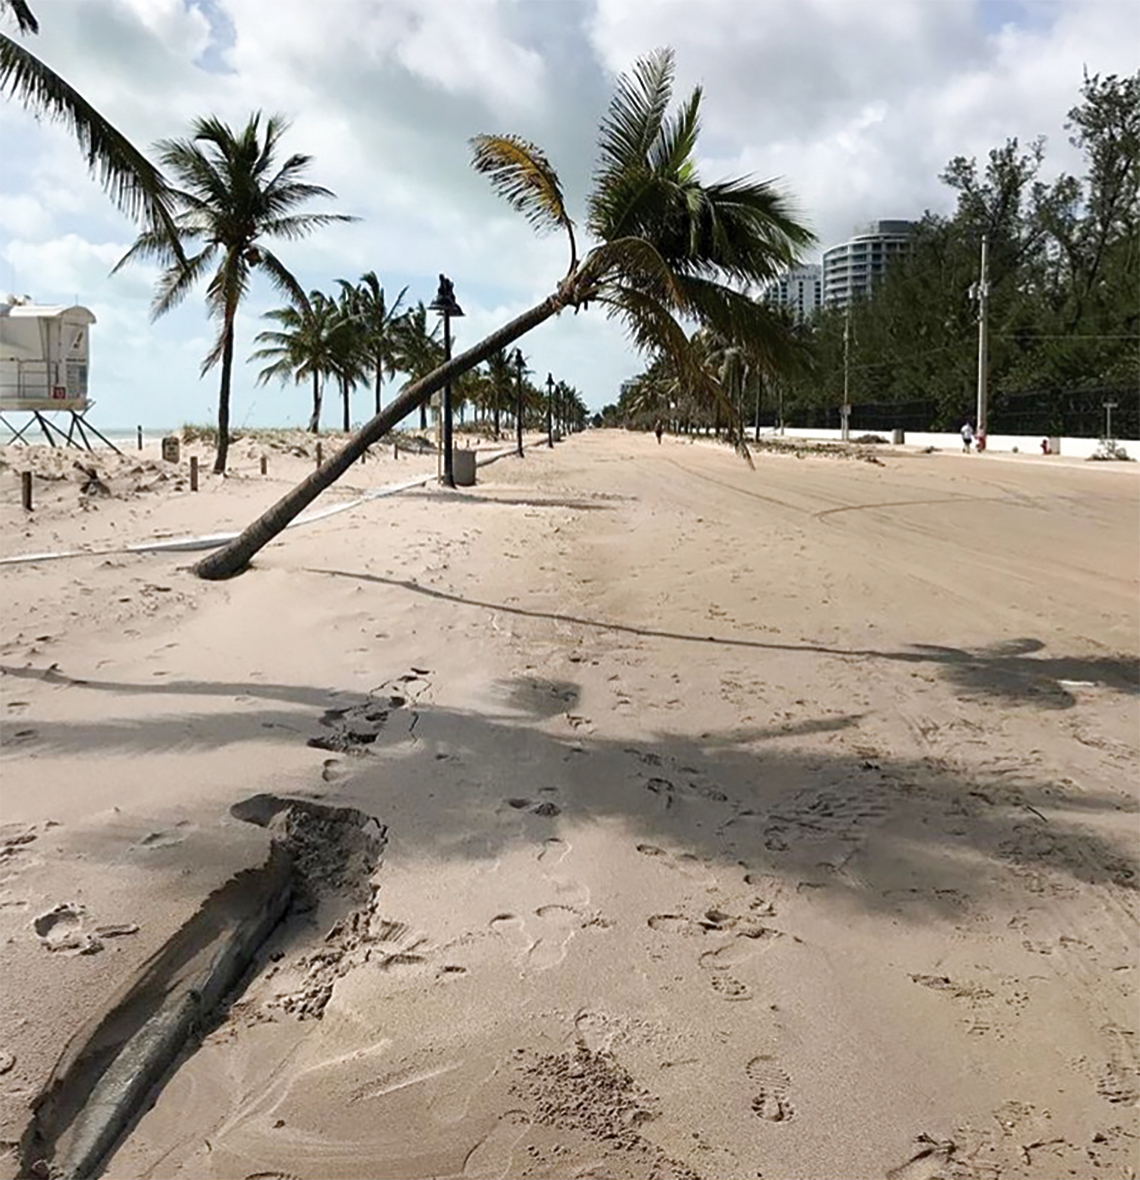 "Instagram: @jhay97 ""Fort laudy beach looking a little extra sandy today.... #HurricaneIrma #Hurricane #Storm #Weather #Rain #Beach #ocean #fortlauderdale #Florocracy #loveFL"